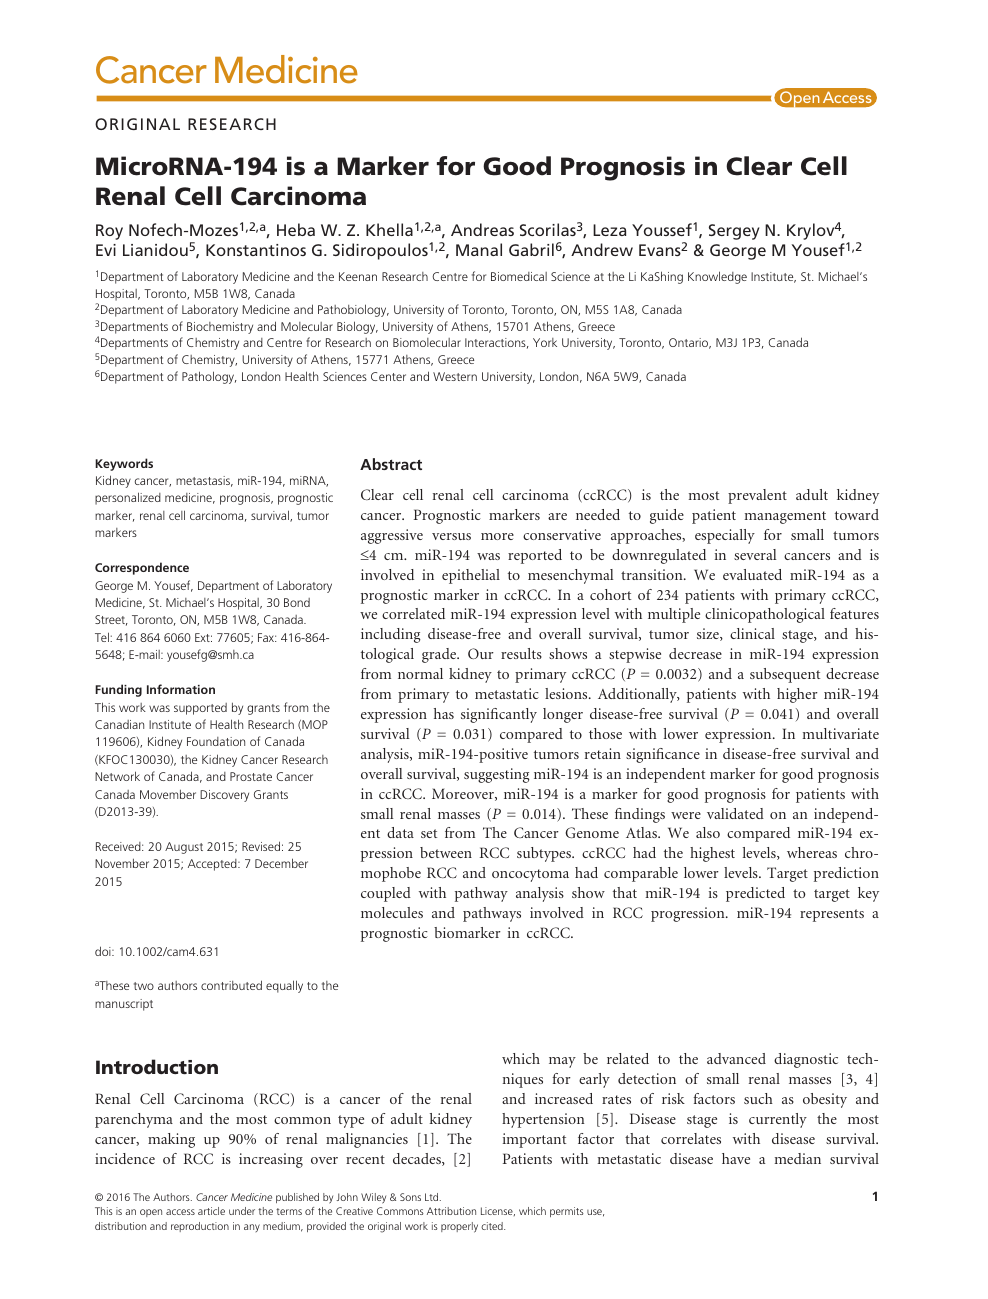 Microrna 194 Is A Marker For Good Prognosis In Clear Cell Renal Cell Carcinoma Topic Of Research Paper In Clinical Medicine Download Scholarly Article Pdf And Read For Free On Cyberleninka Open